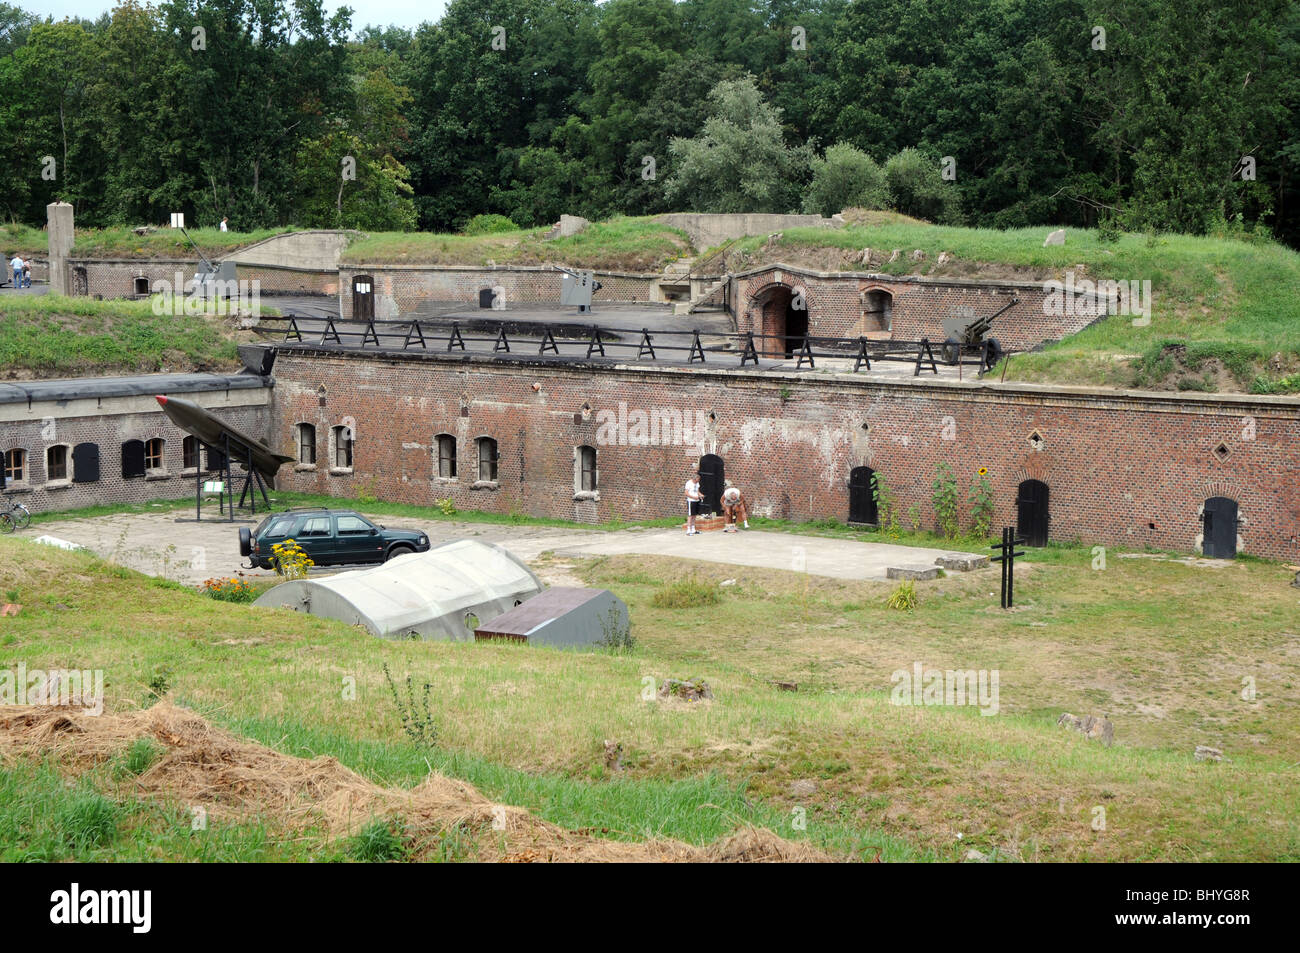 The Western Fort on Uznam Island, part of Swinoujscie Fortress, Poland Stock Photo